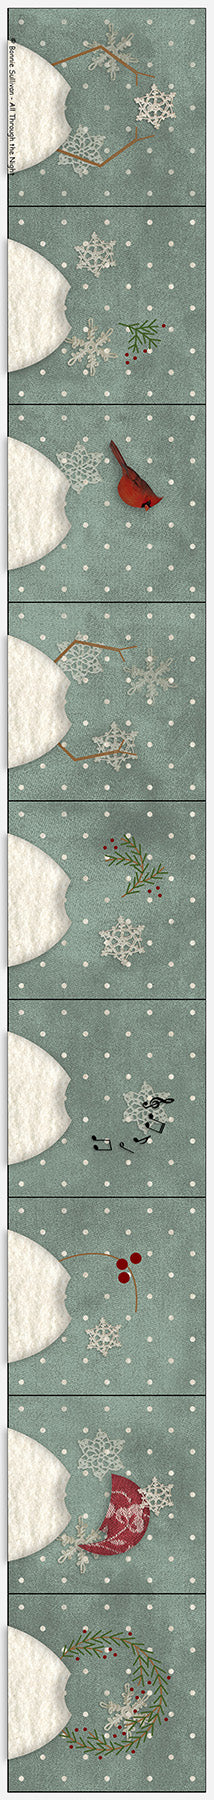 F1908 - Nine Little Snowmen Preprinted Fabric